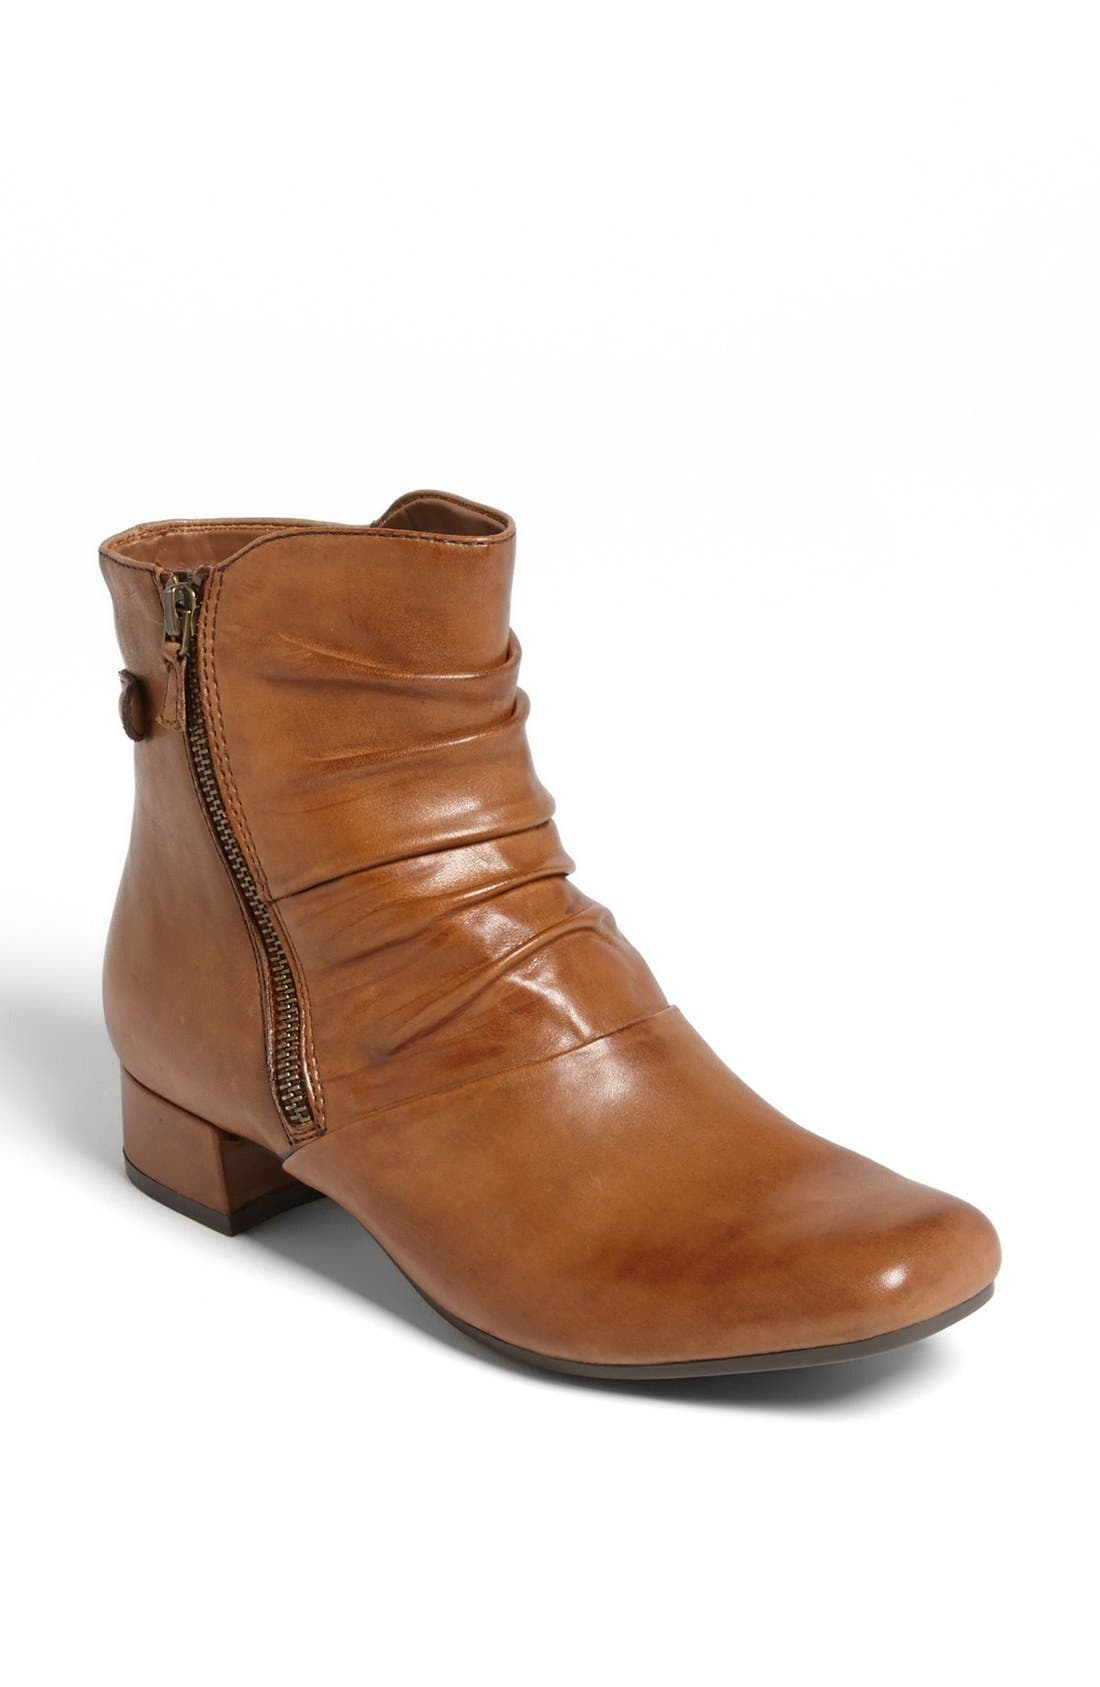 Alternate Image 1 Selected - Earth® 'Wickwire' Bootie